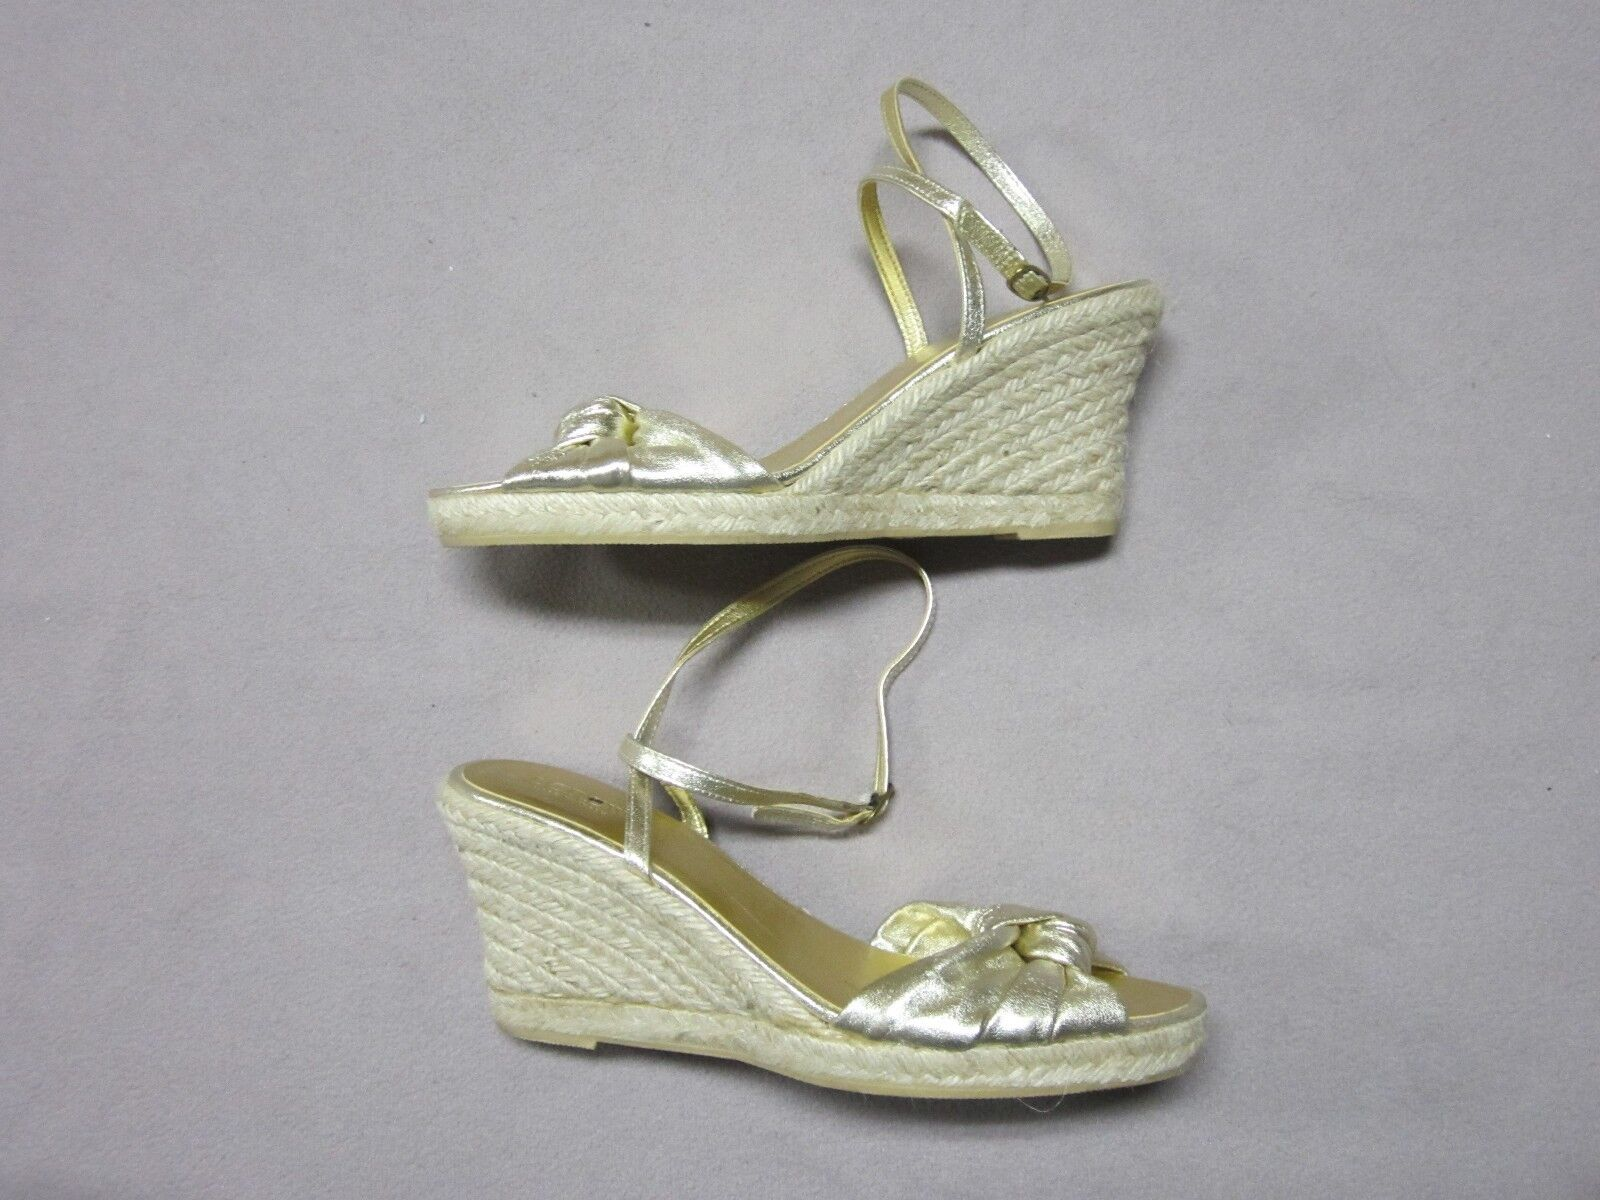 J.CREW MADE IN ITALY Damenschuhe RARE METALLIC GOLD ESPADRILLE PLATFORM WEDGES 9 NEU